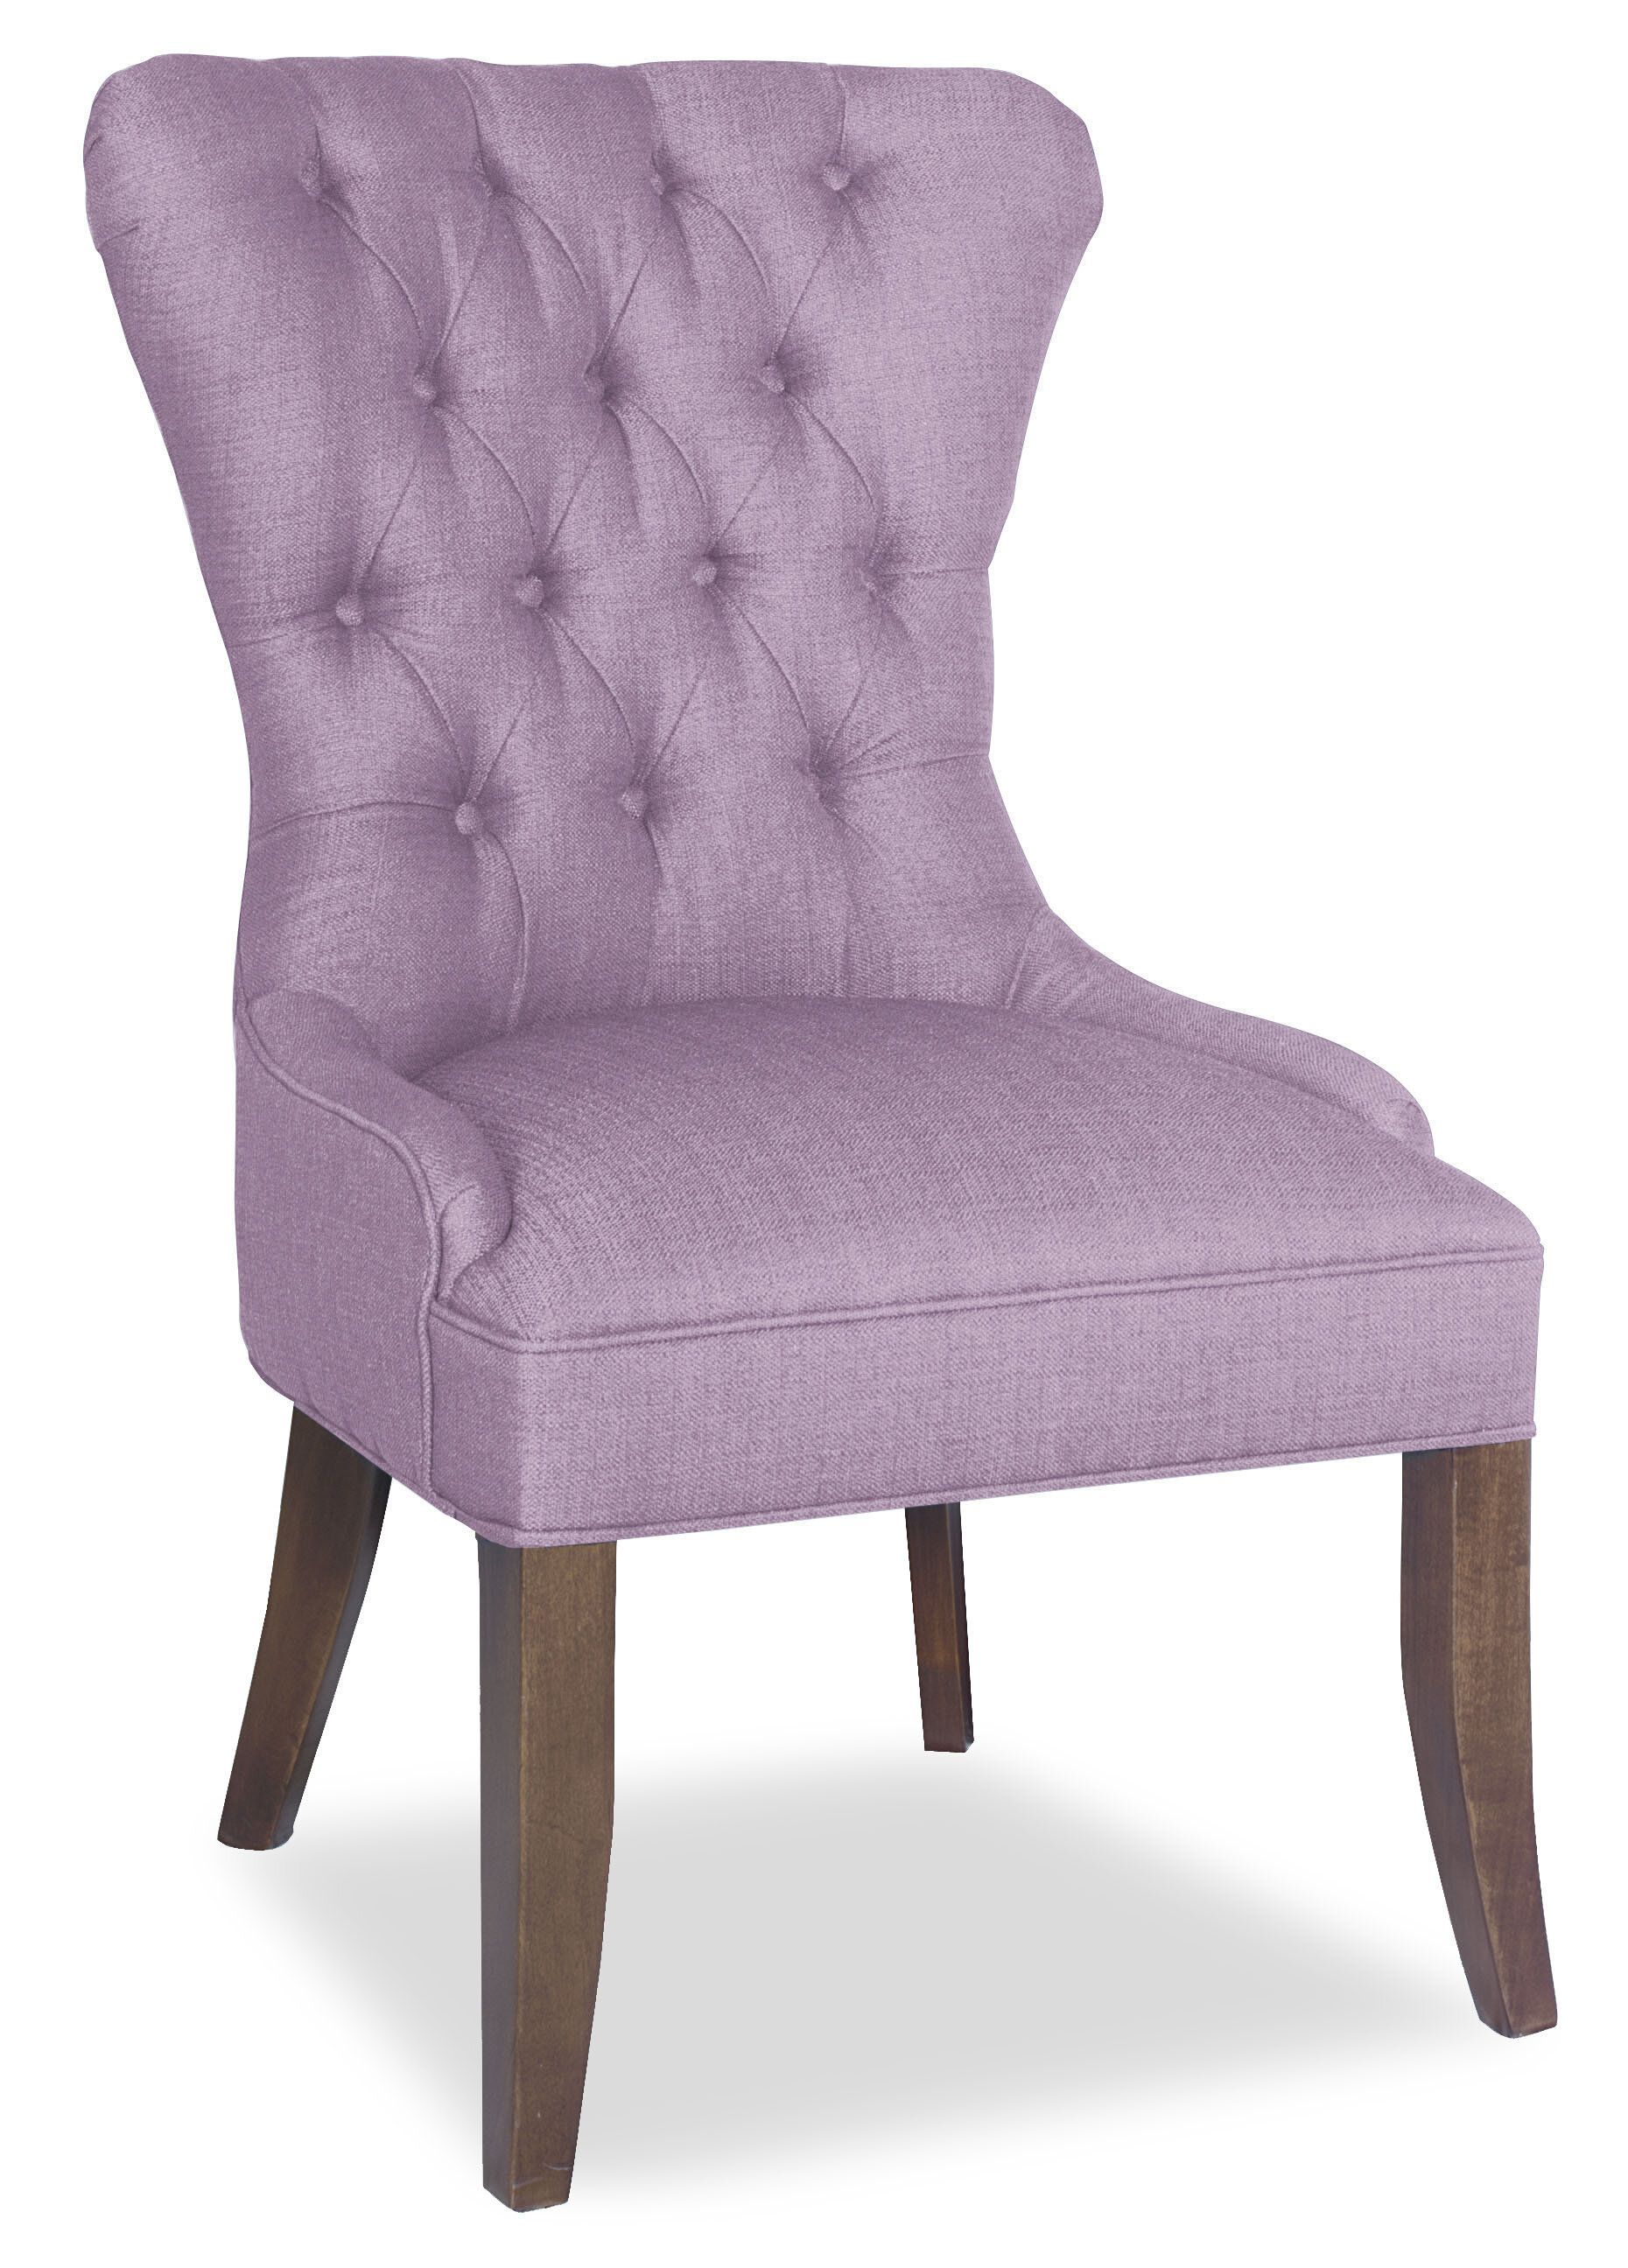 Tory Furniture | Wayfair